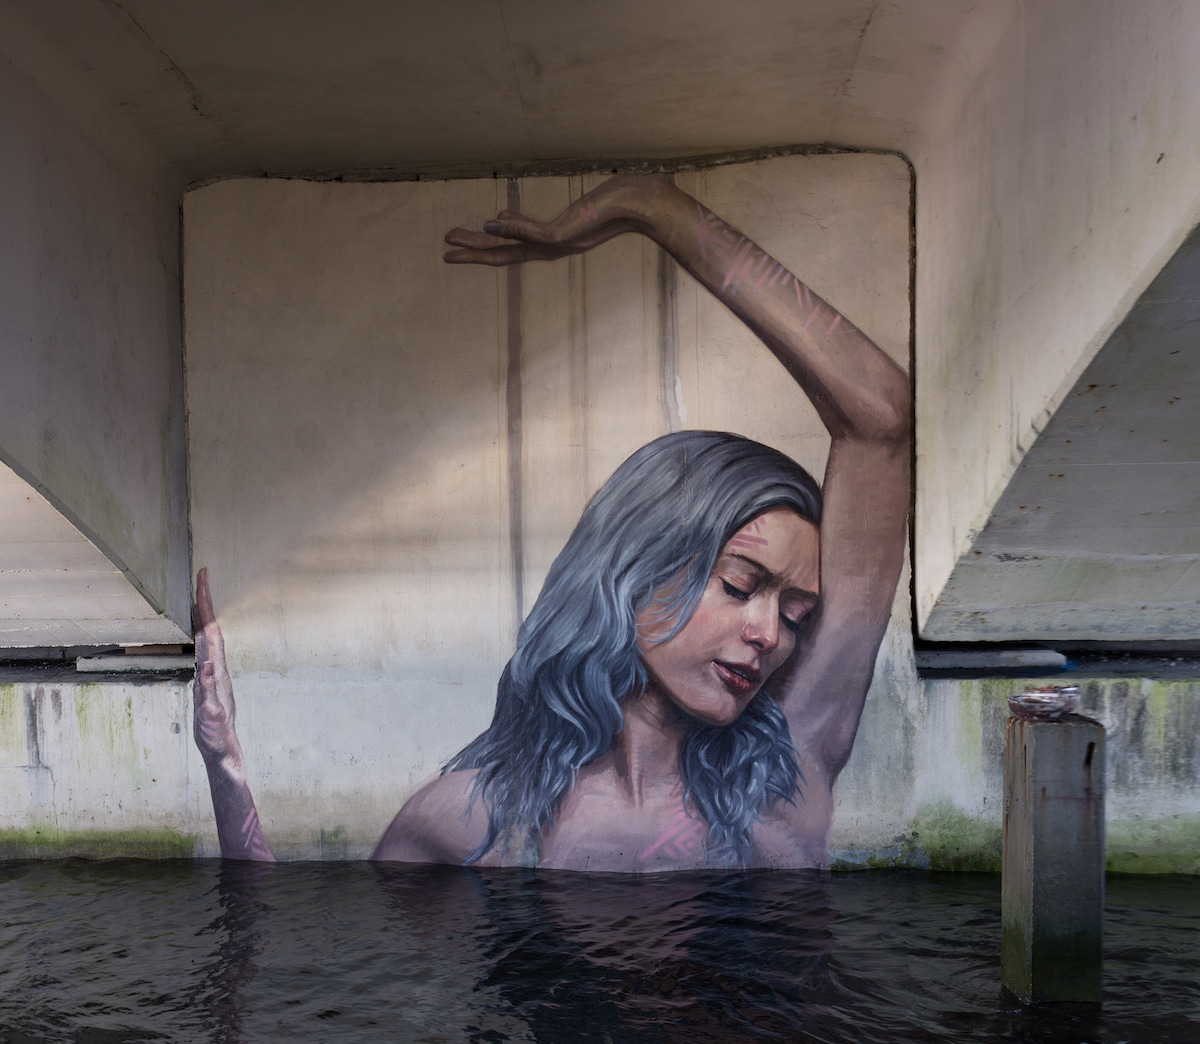 Hula - Sean Yoro - Environmental Street Art